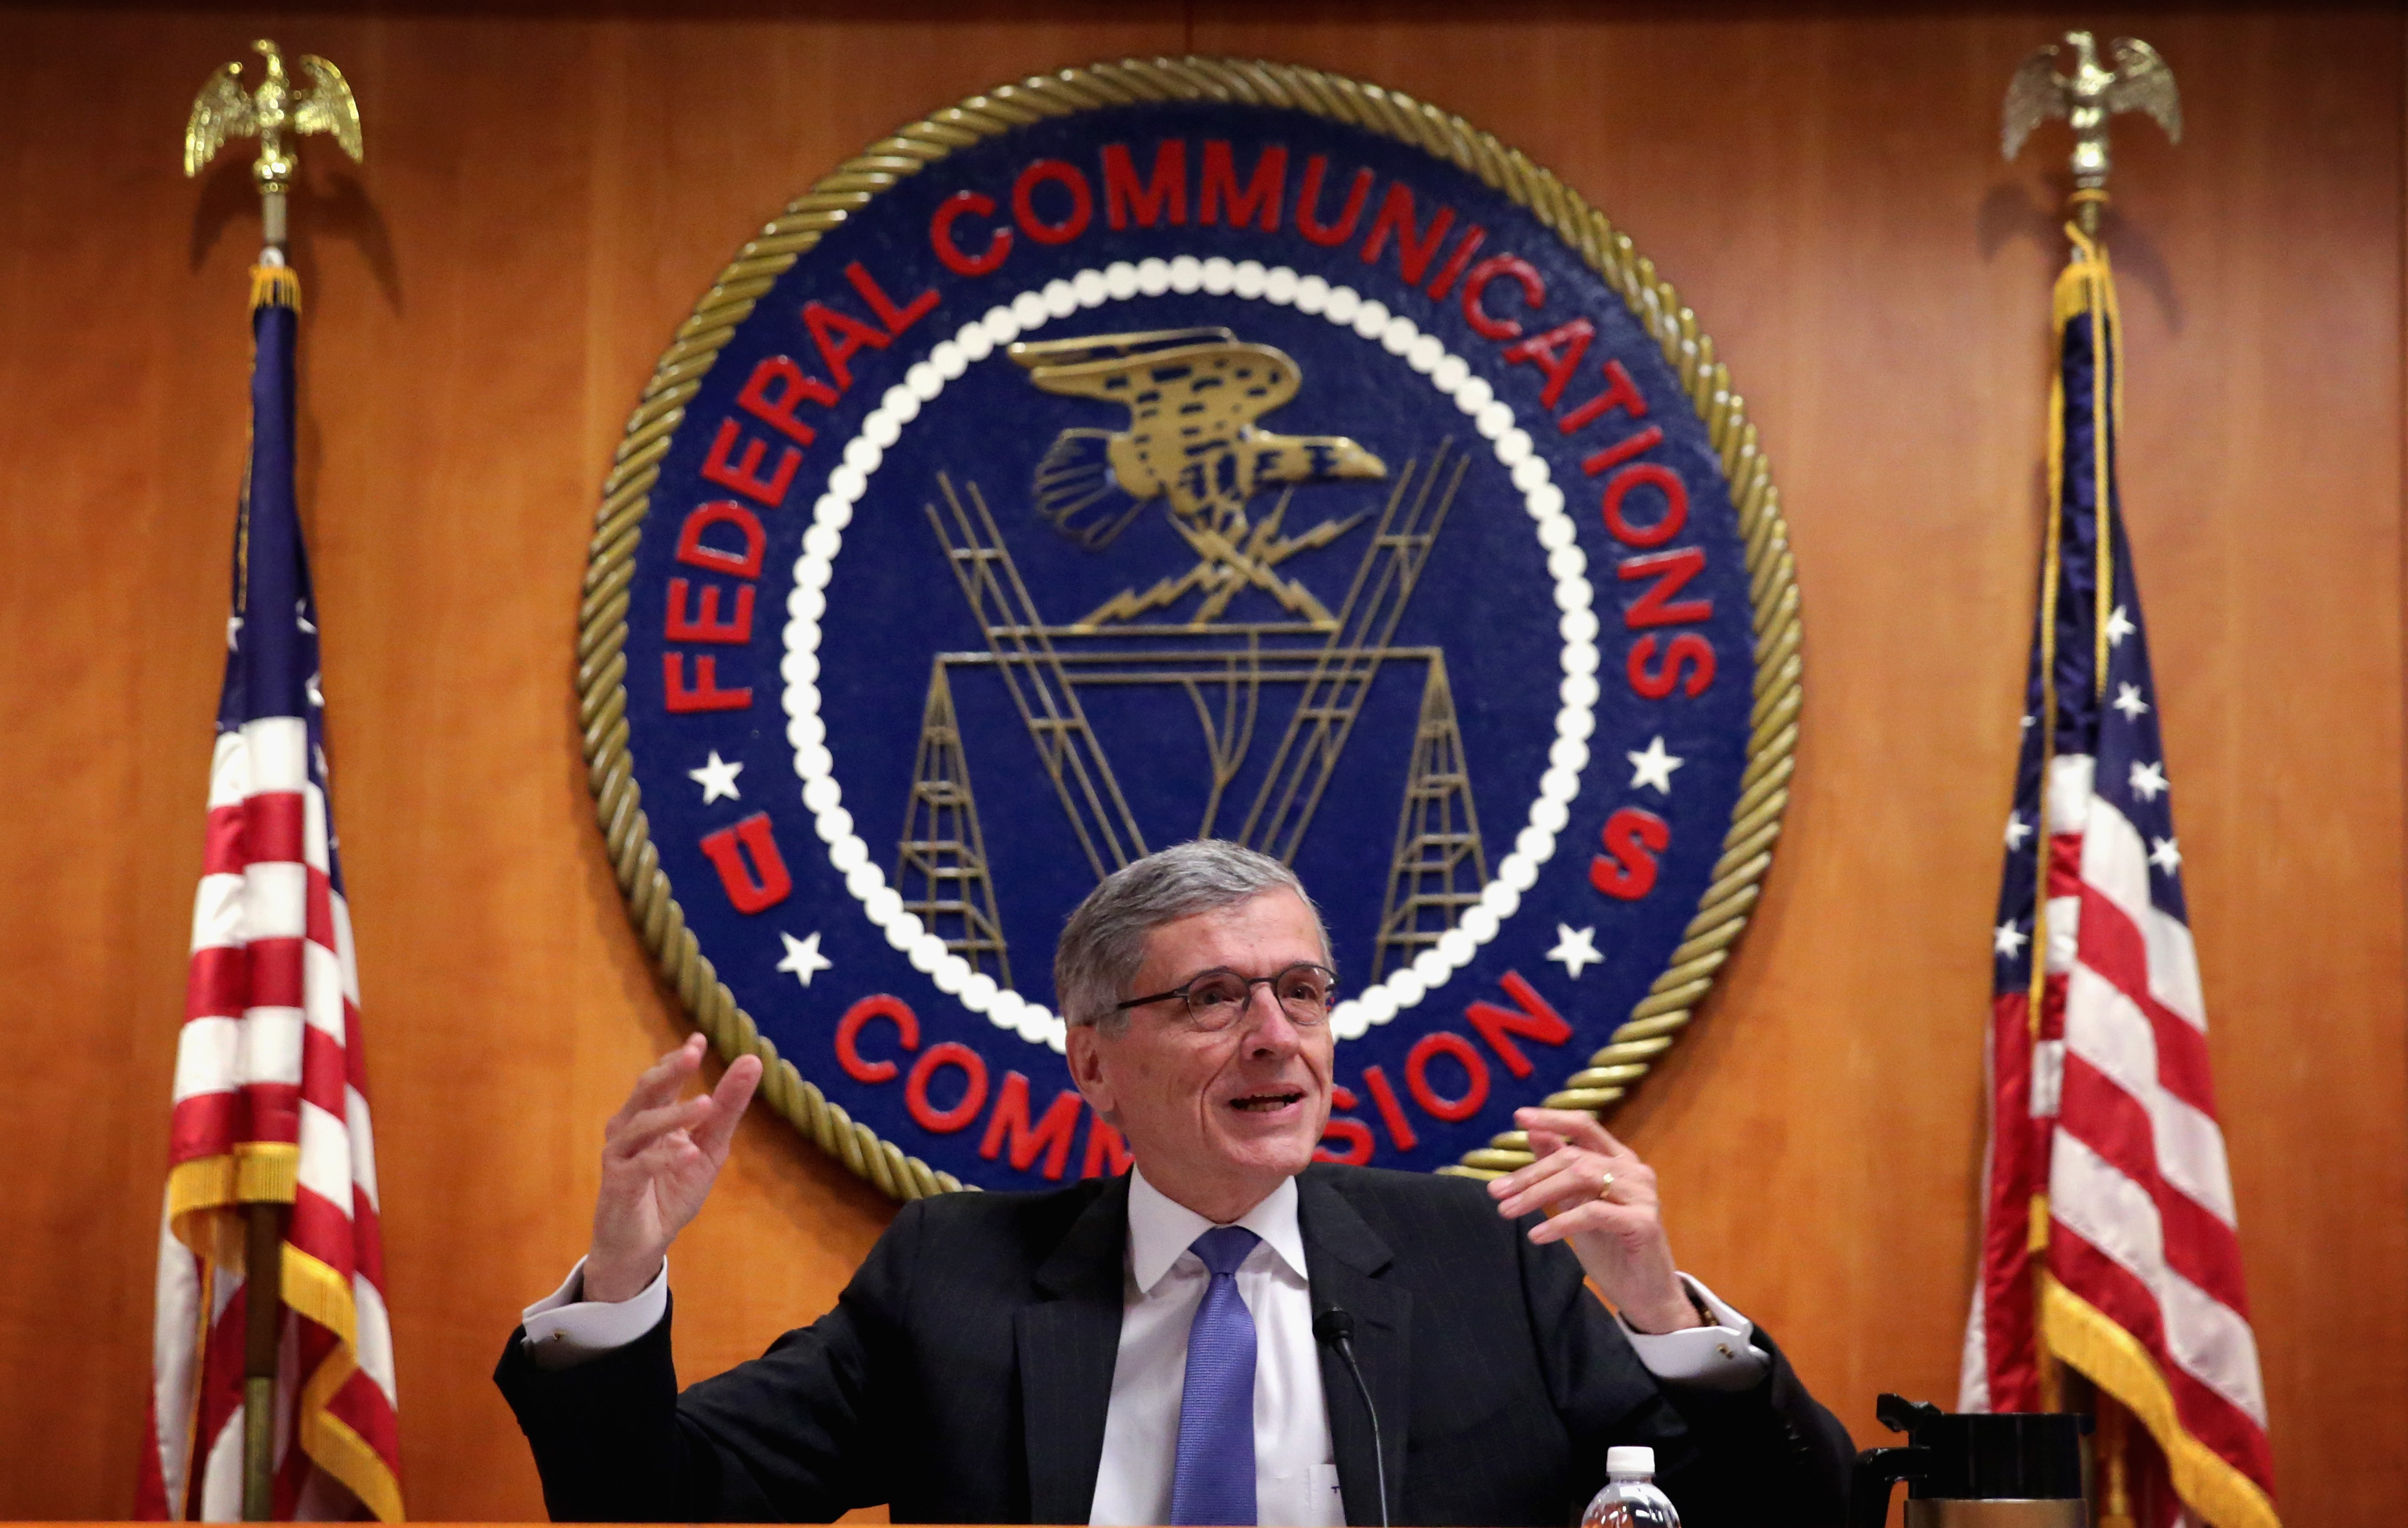 Federal Communications Commission (FCC) Chairman Tom Wheeler speaks during an open meeting to receive public comment on proposed open Internet notice of proposed rule making and spectrum auctions May 15, 2014 in Washington, DC.